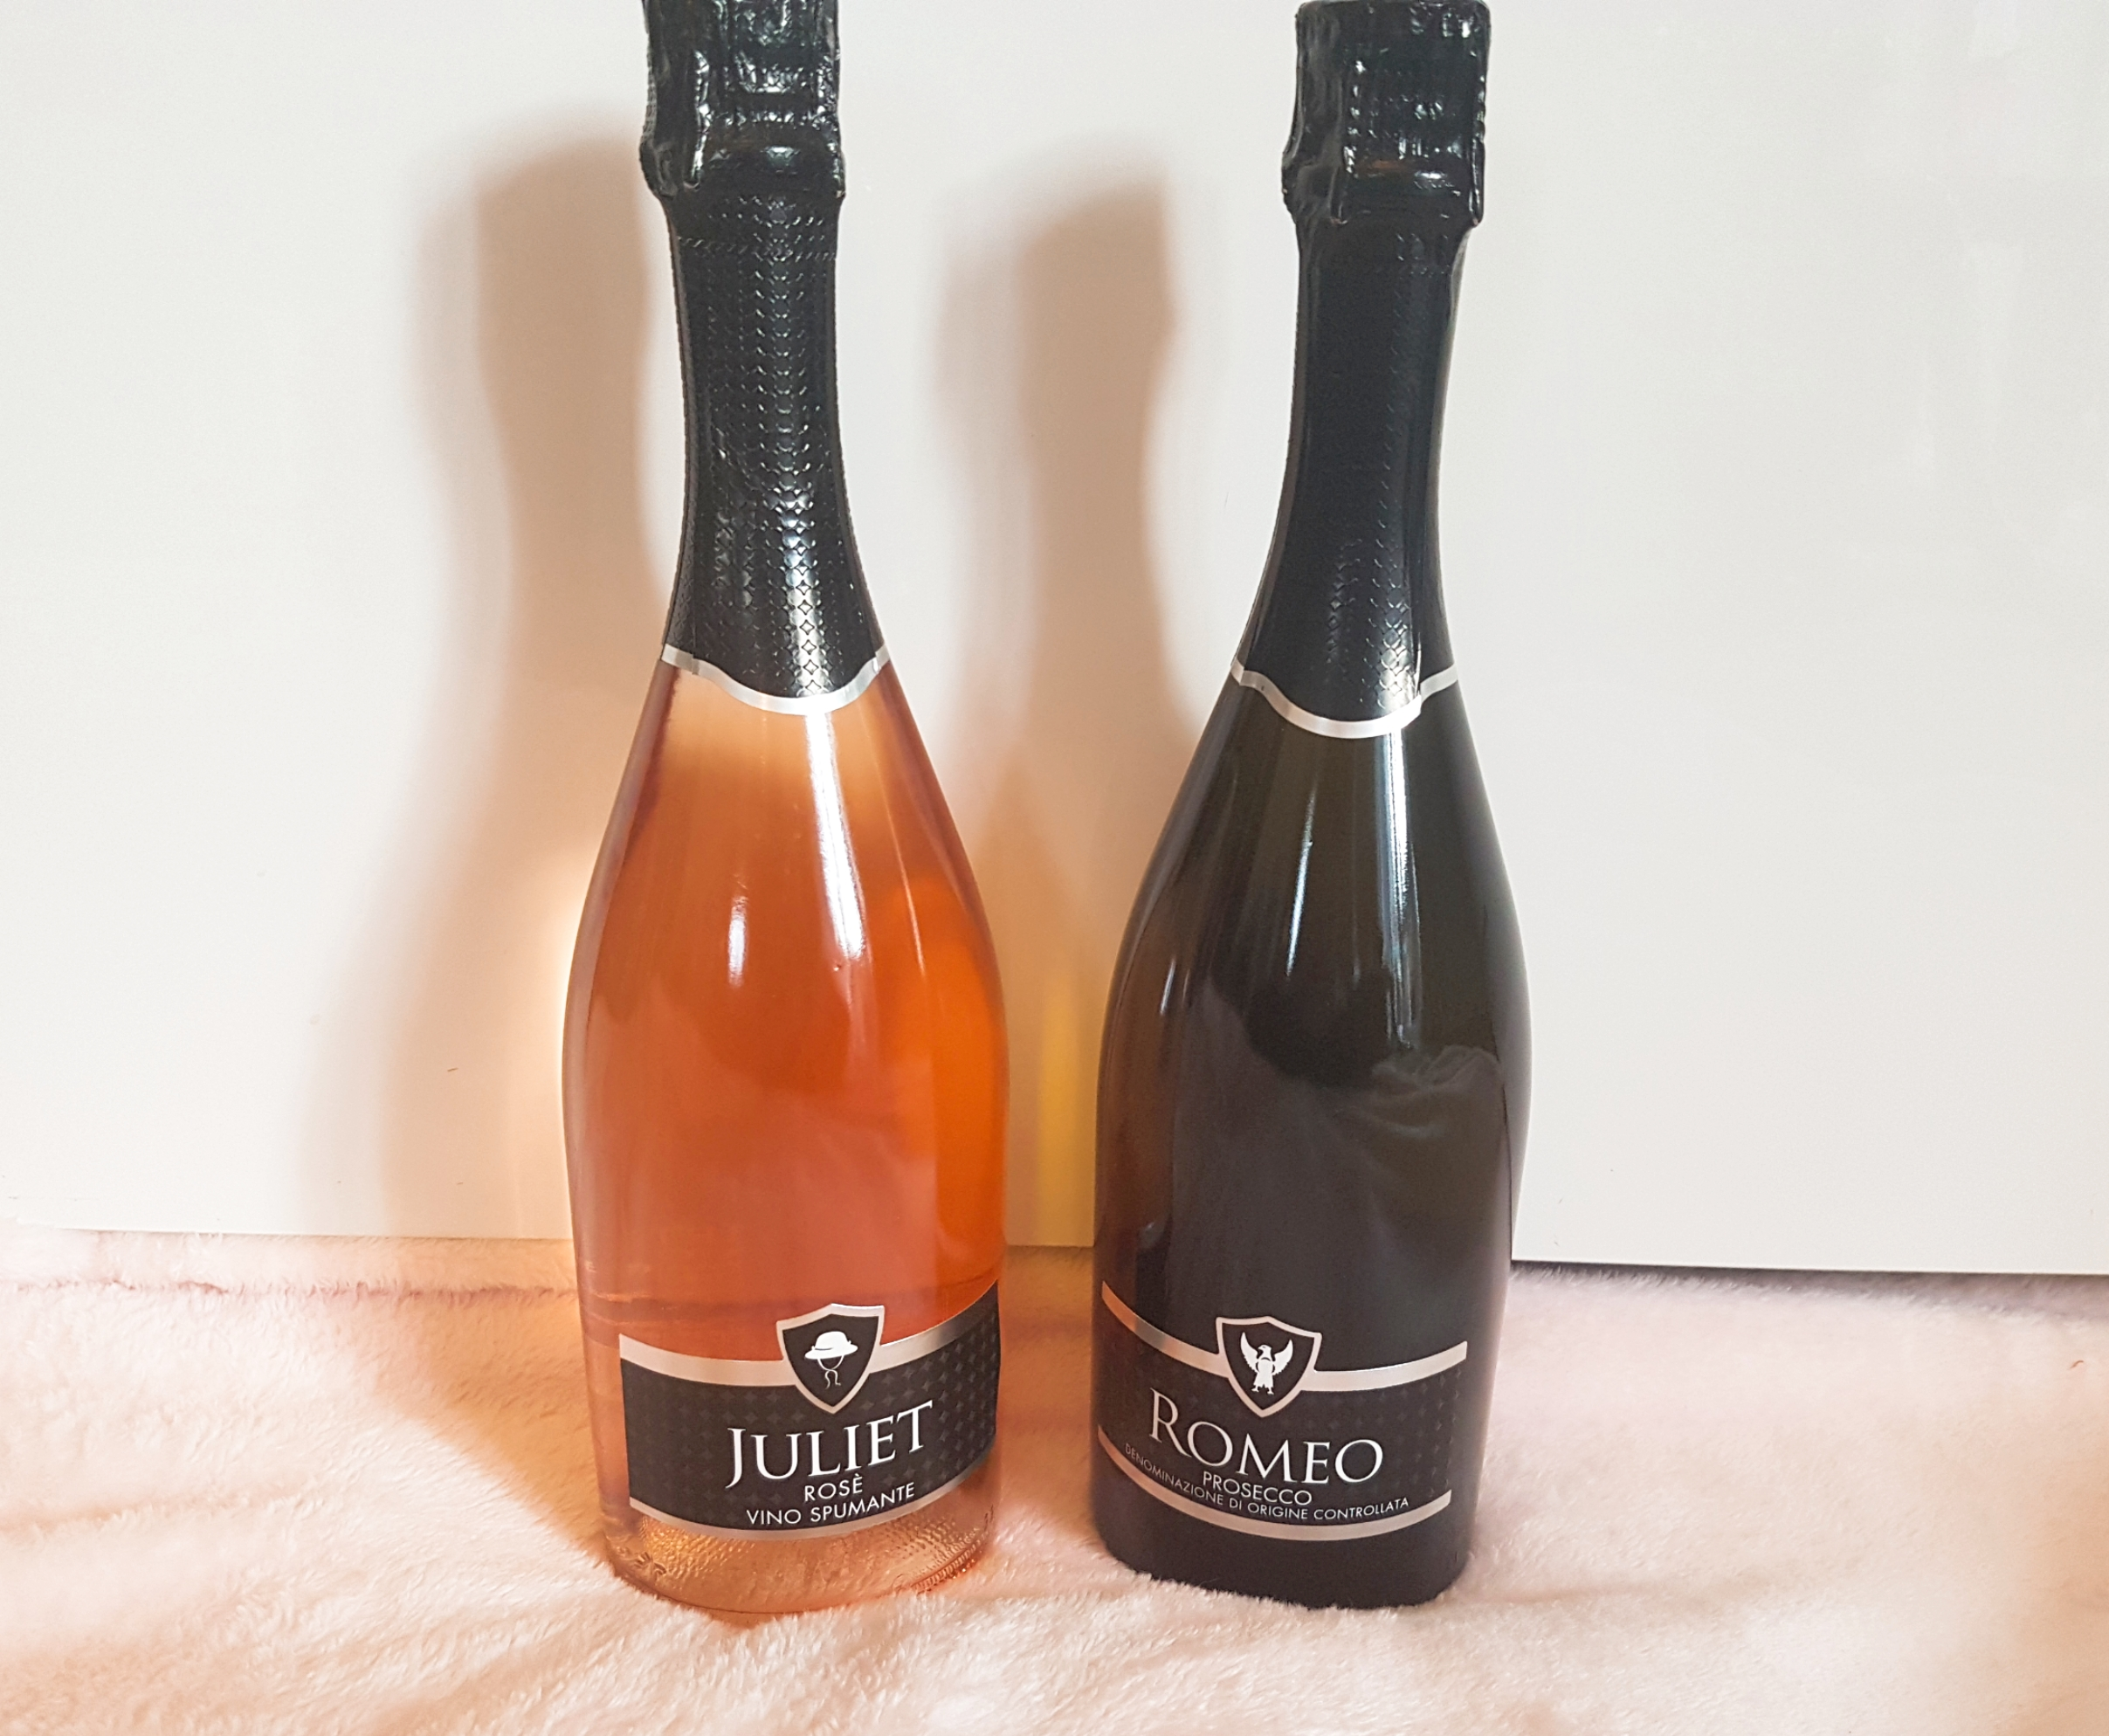 il gusto romeo and Juliet prosecco valentines gift guide